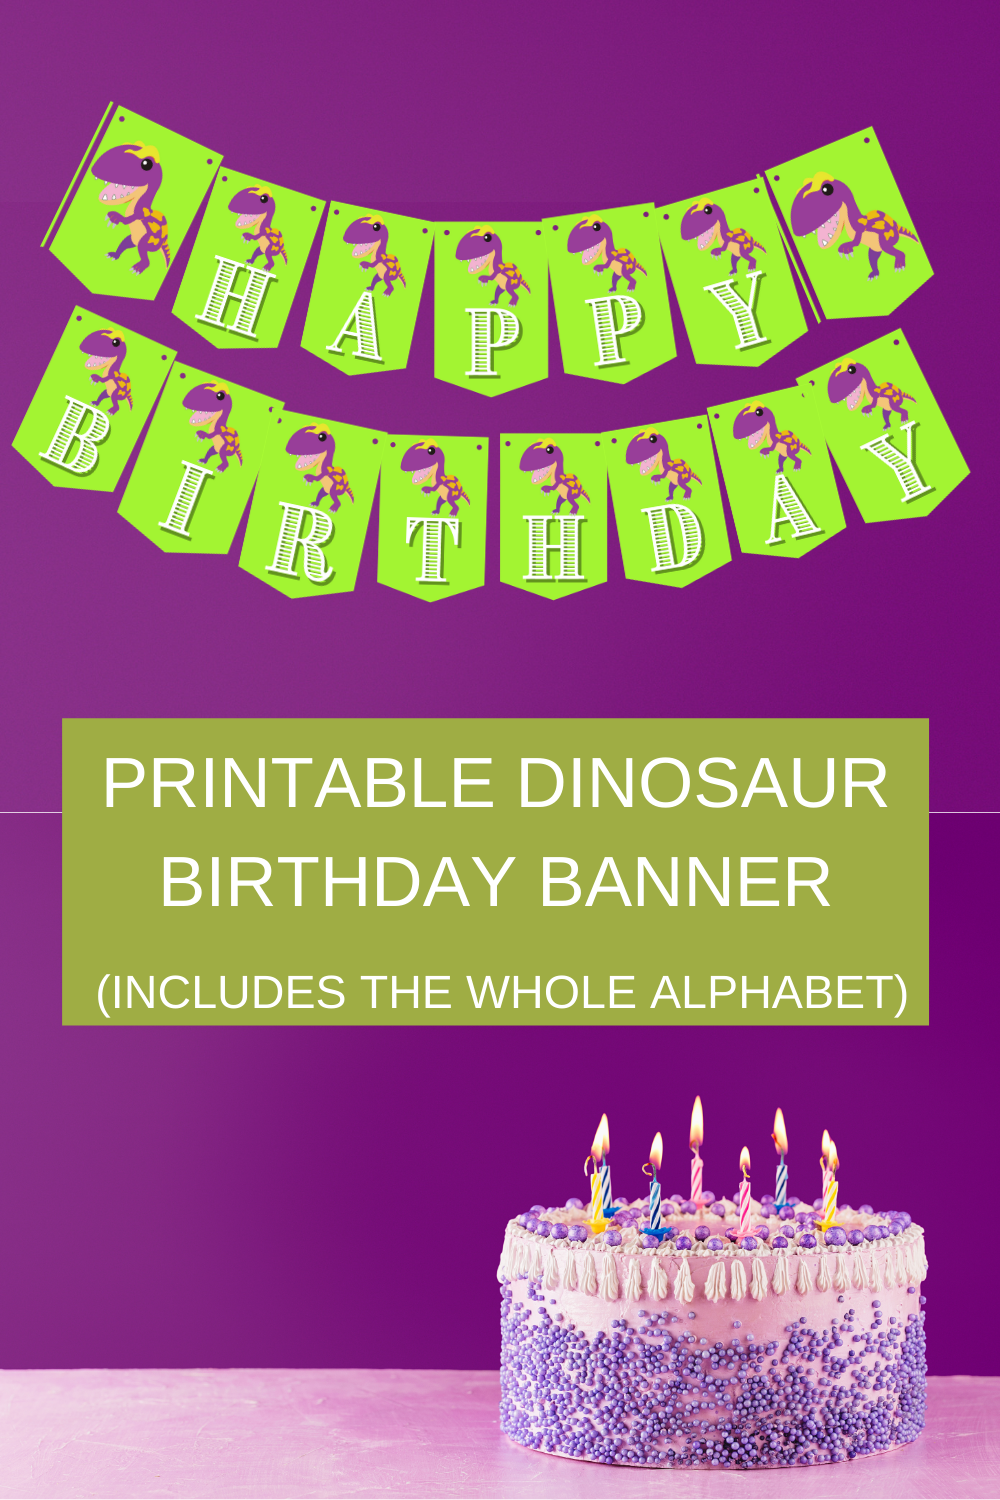 Green and purple dinosaur party décor